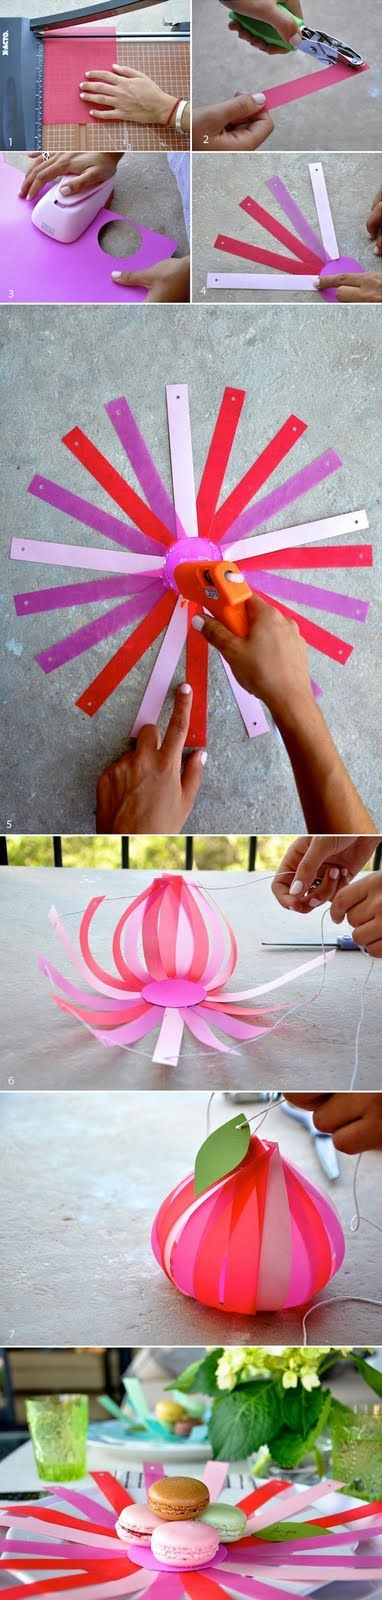 gift-wrapping idea for treats!!